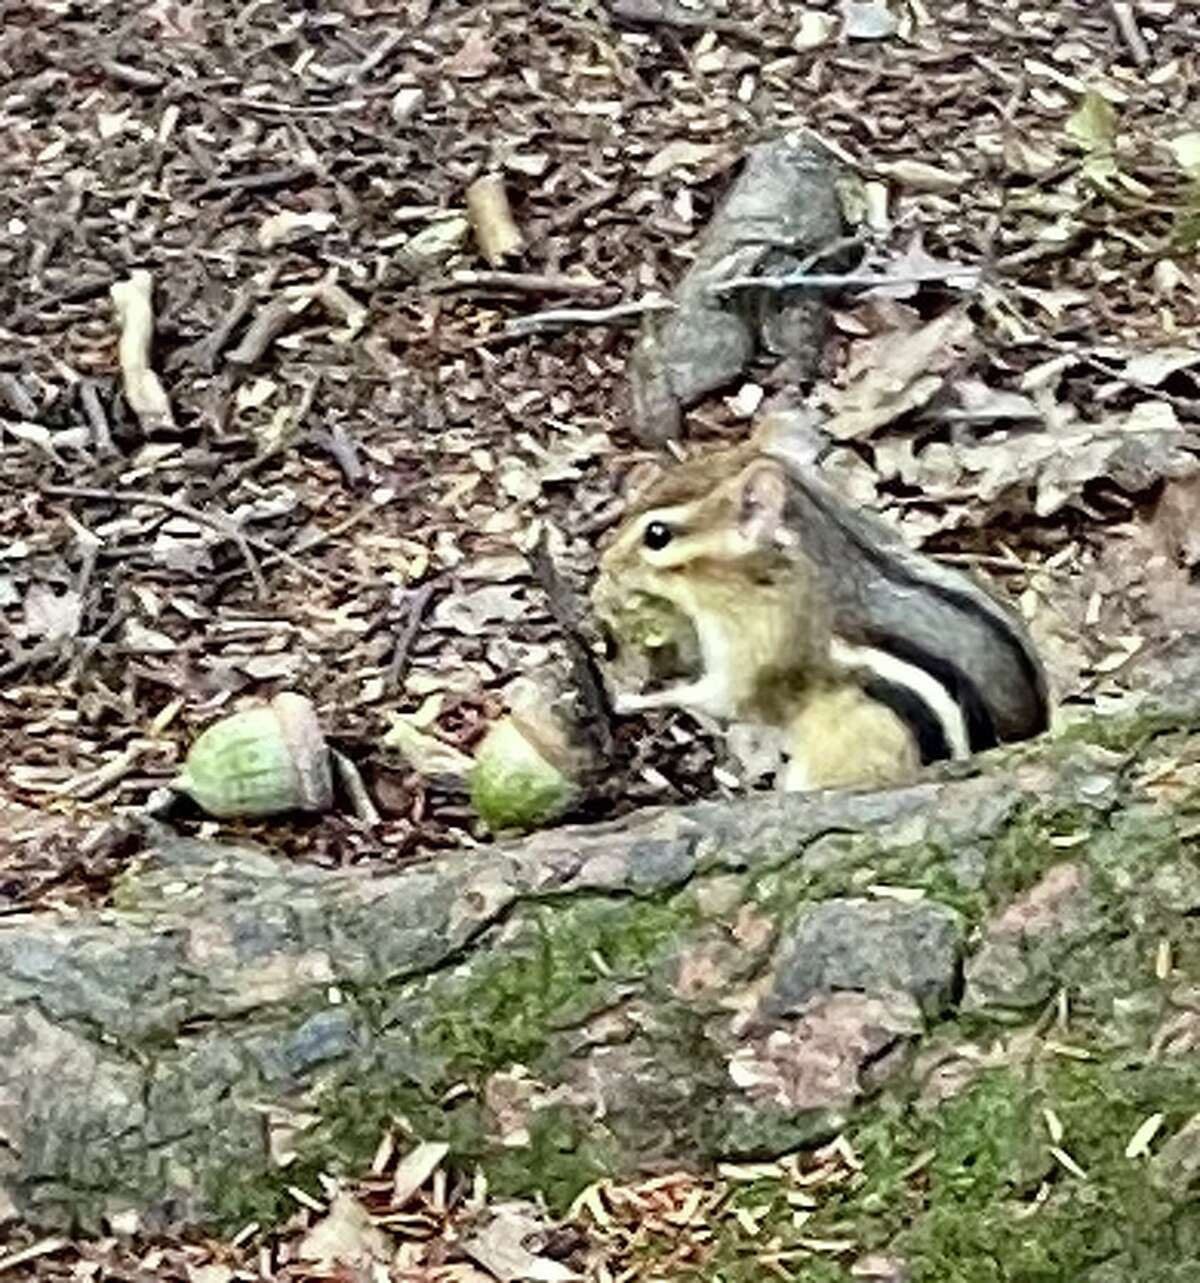 This little denizen of the wild - this little chipmunk - was seen on the Vlomanskill Trail at Five Rivers, enjoying natures bounty.